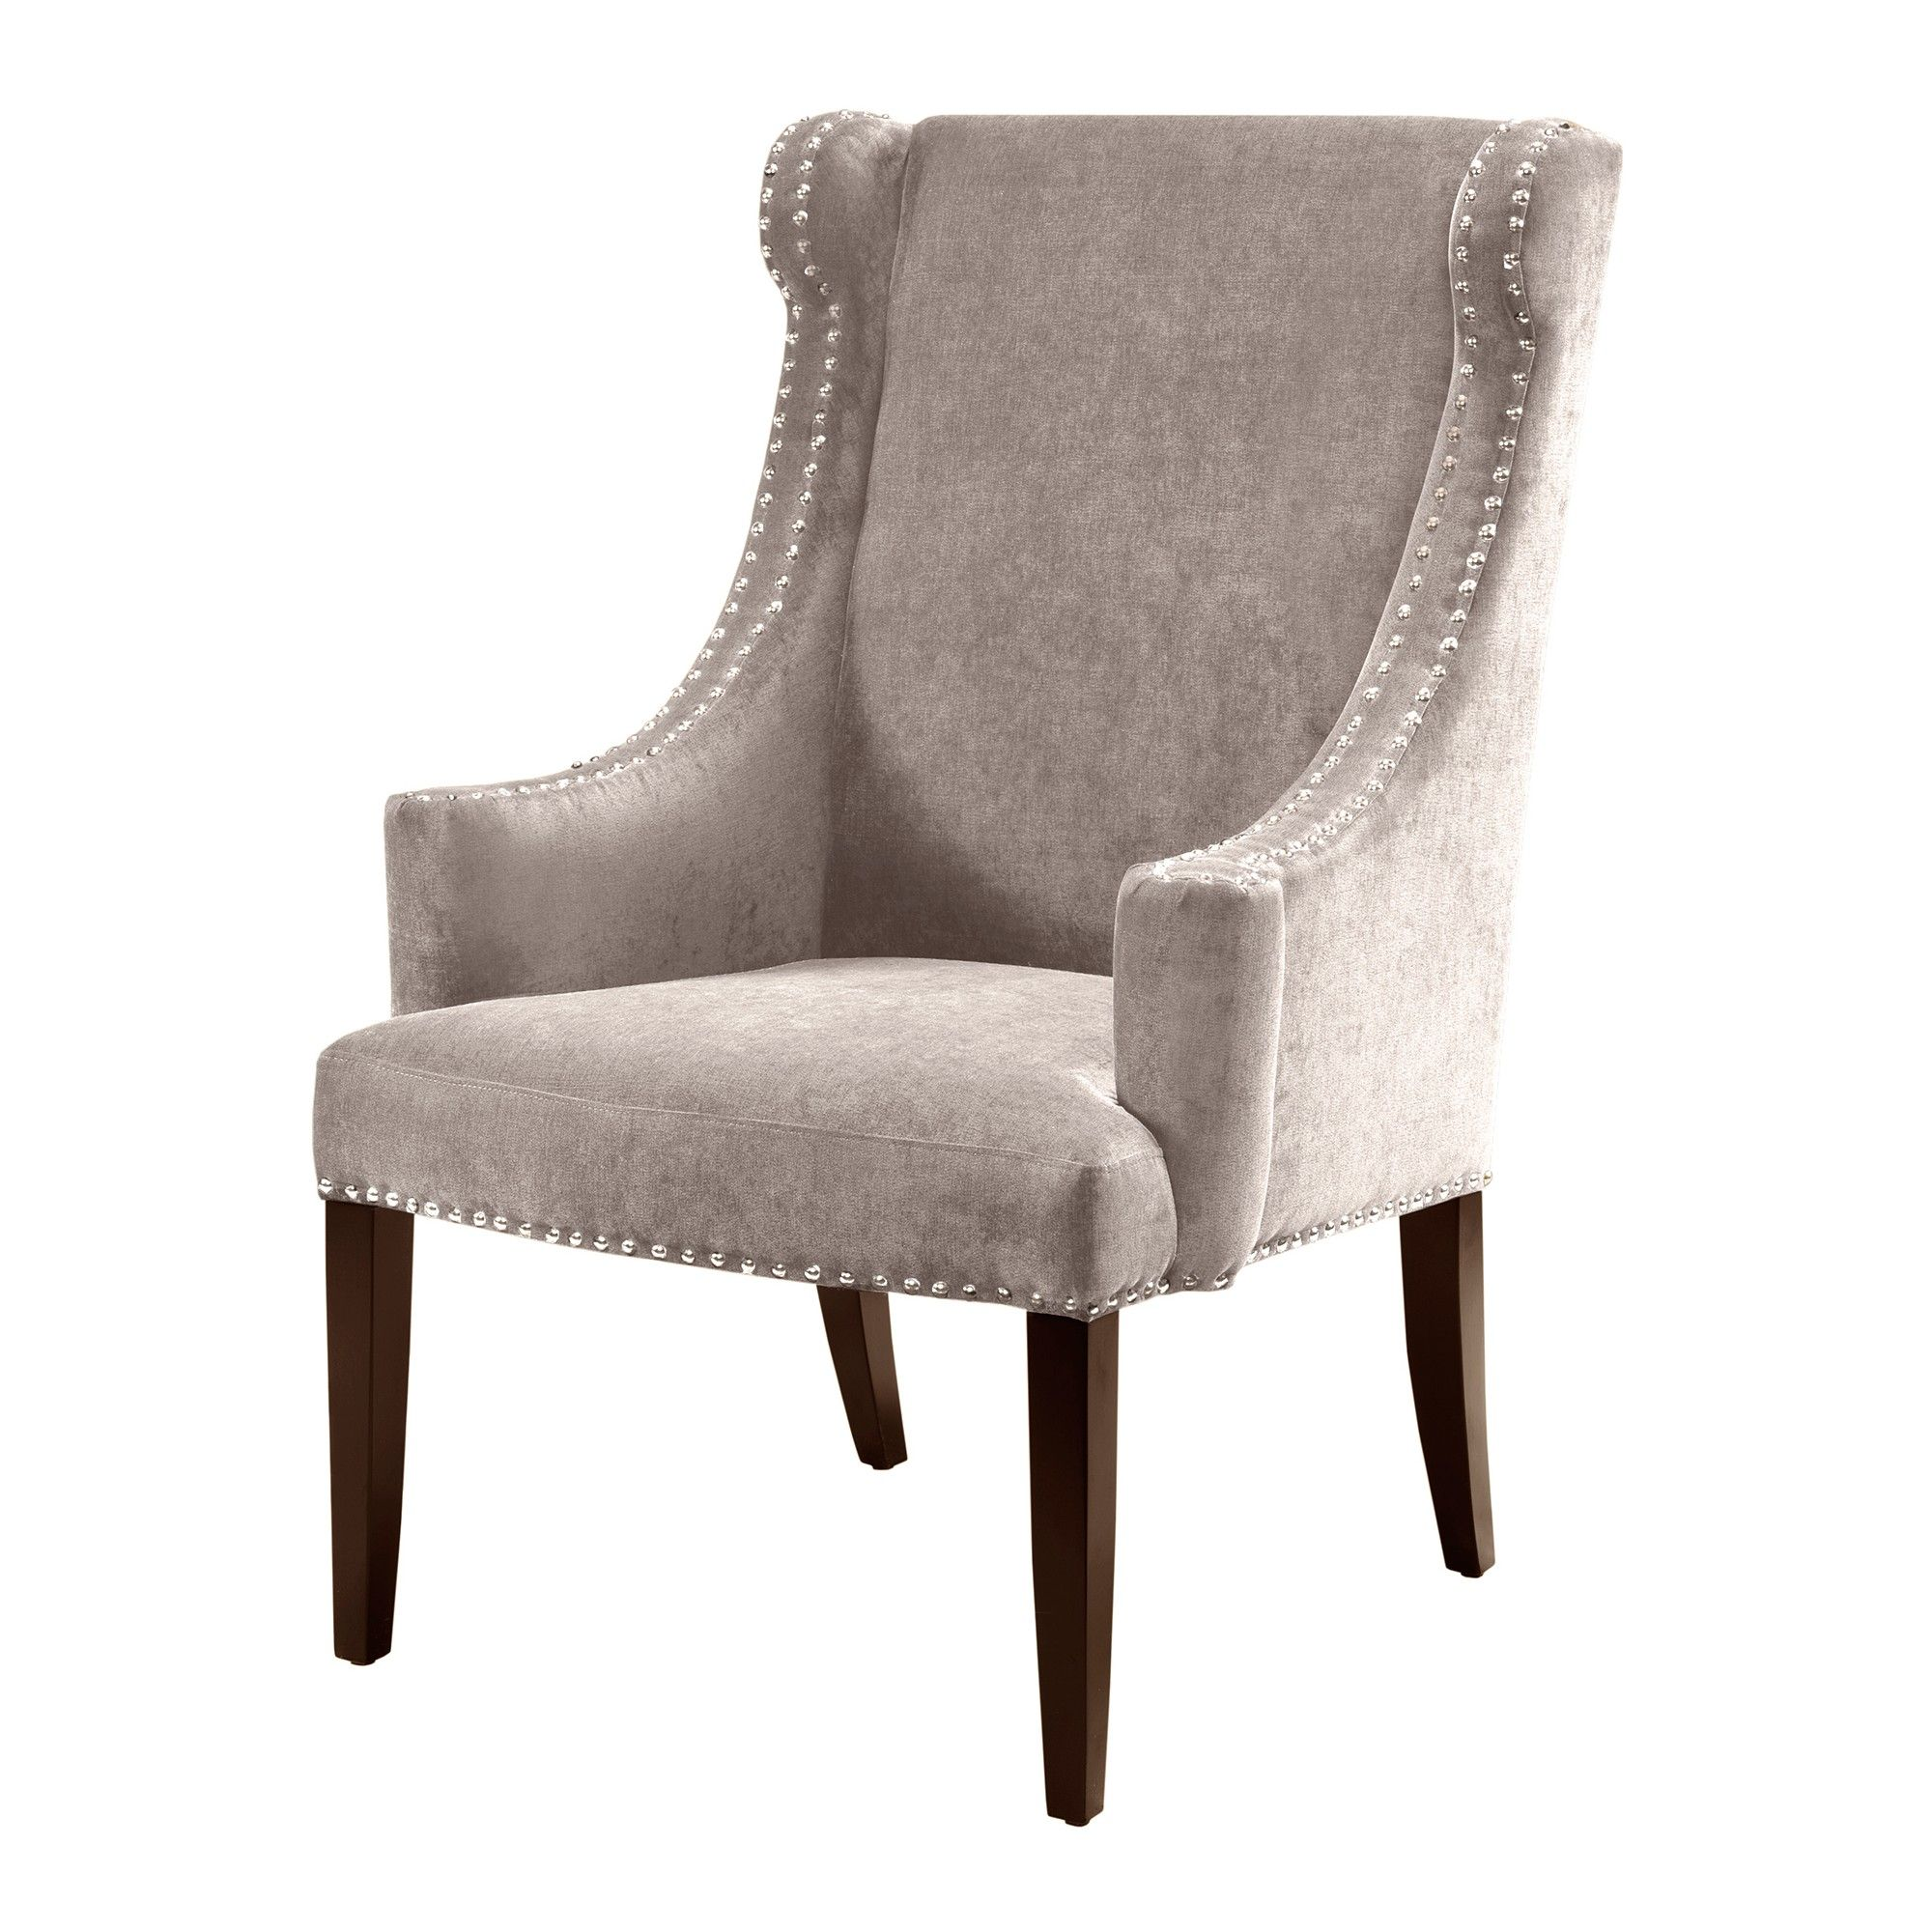 accent chairs taupe brown products wing chair chair wingback chair rh pinterest com